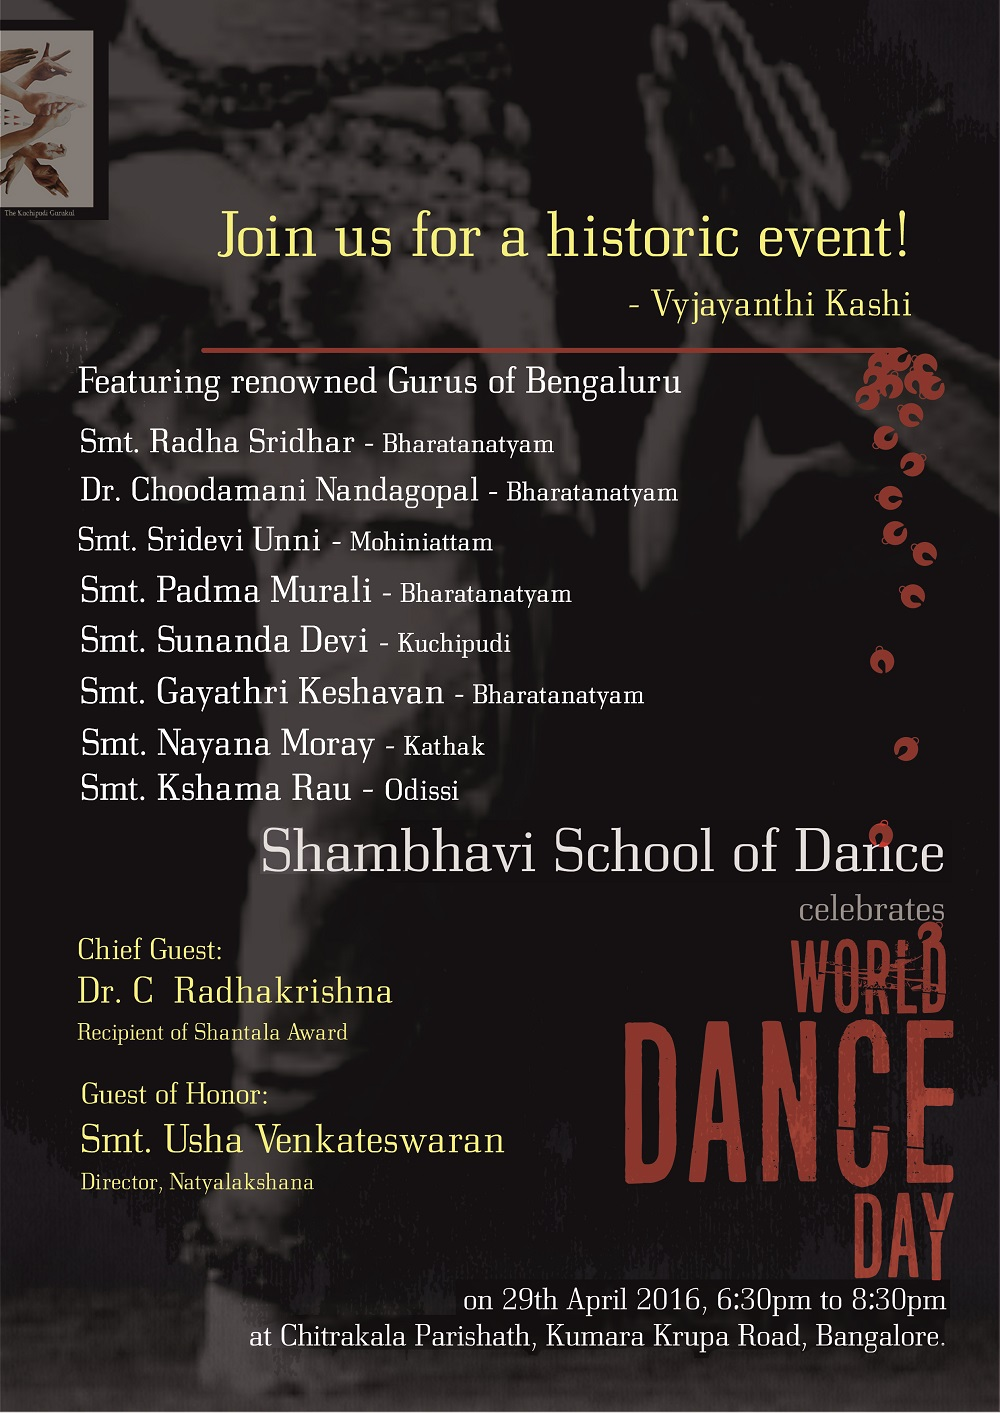 World Dance Day 2016 - Shambhavi School of Dance